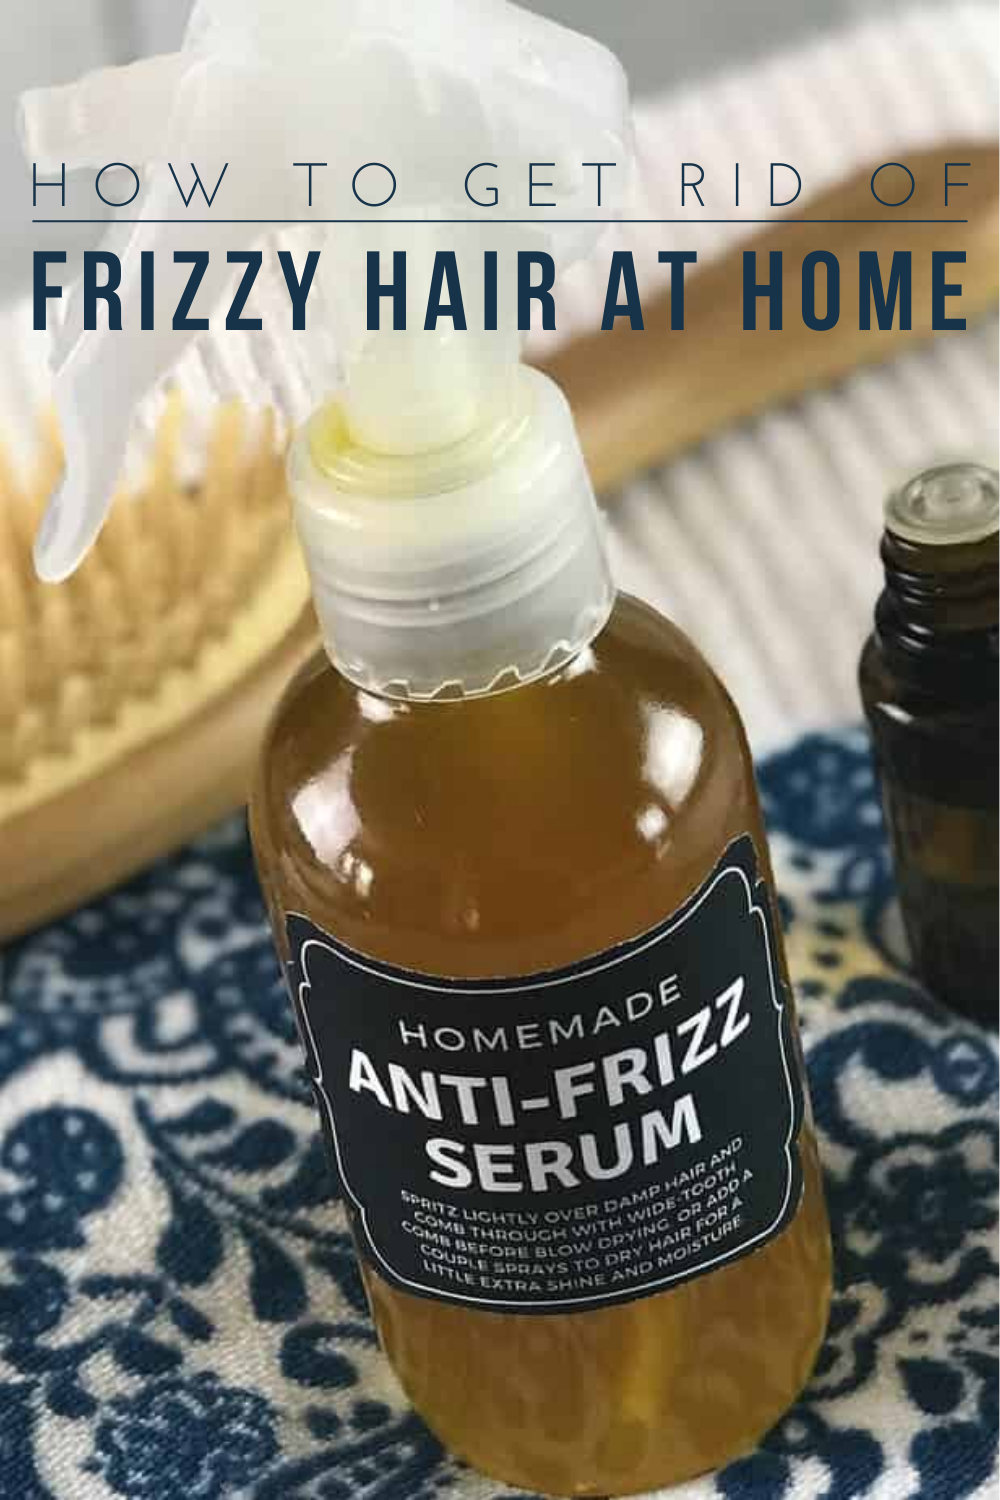 How to Get Rid of Frizzy Hair At Home : Natural Homemade Tips